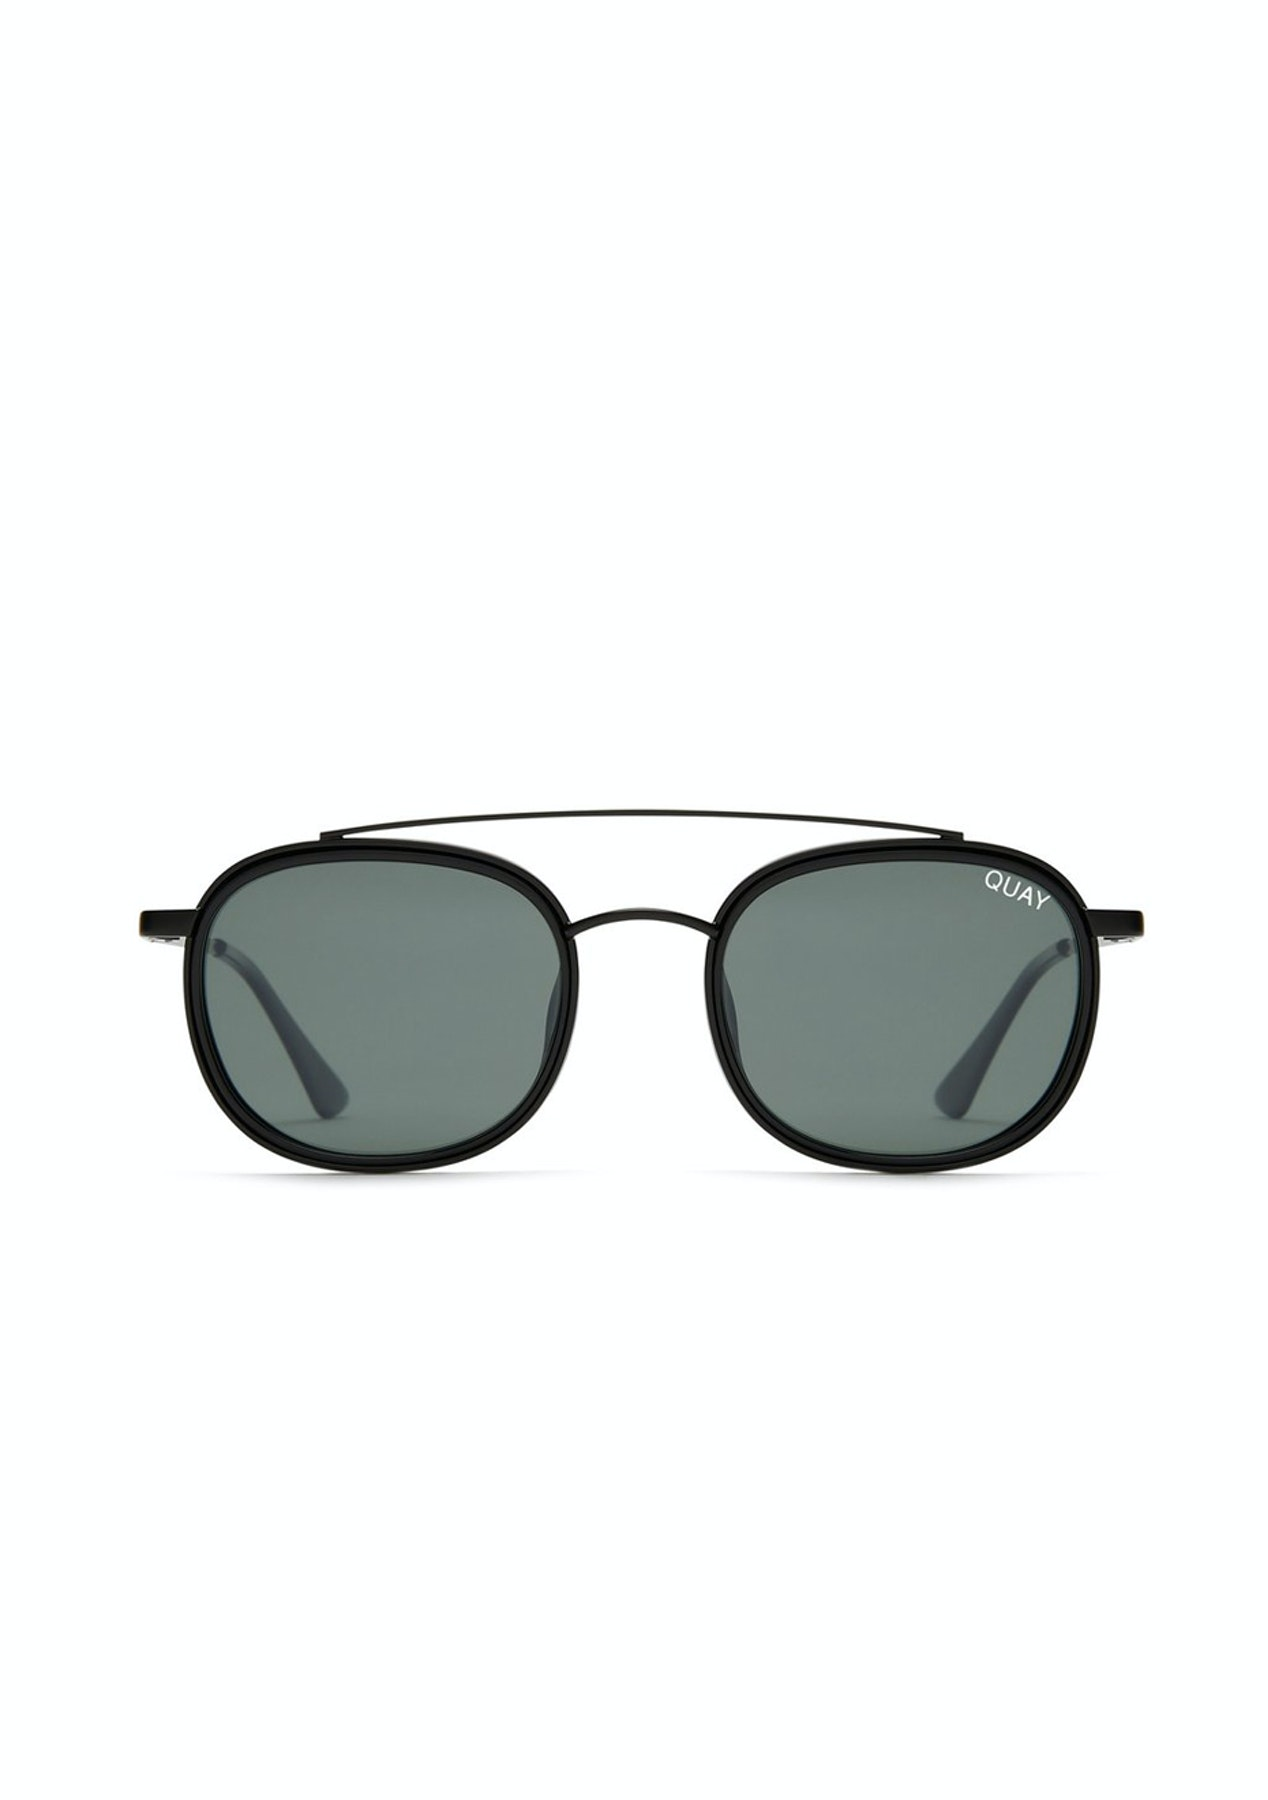 72530f6269 Quay Australia - Got It Covered - Black   Green Lens - Express Shipping  Eyewear Outlet - Onceit